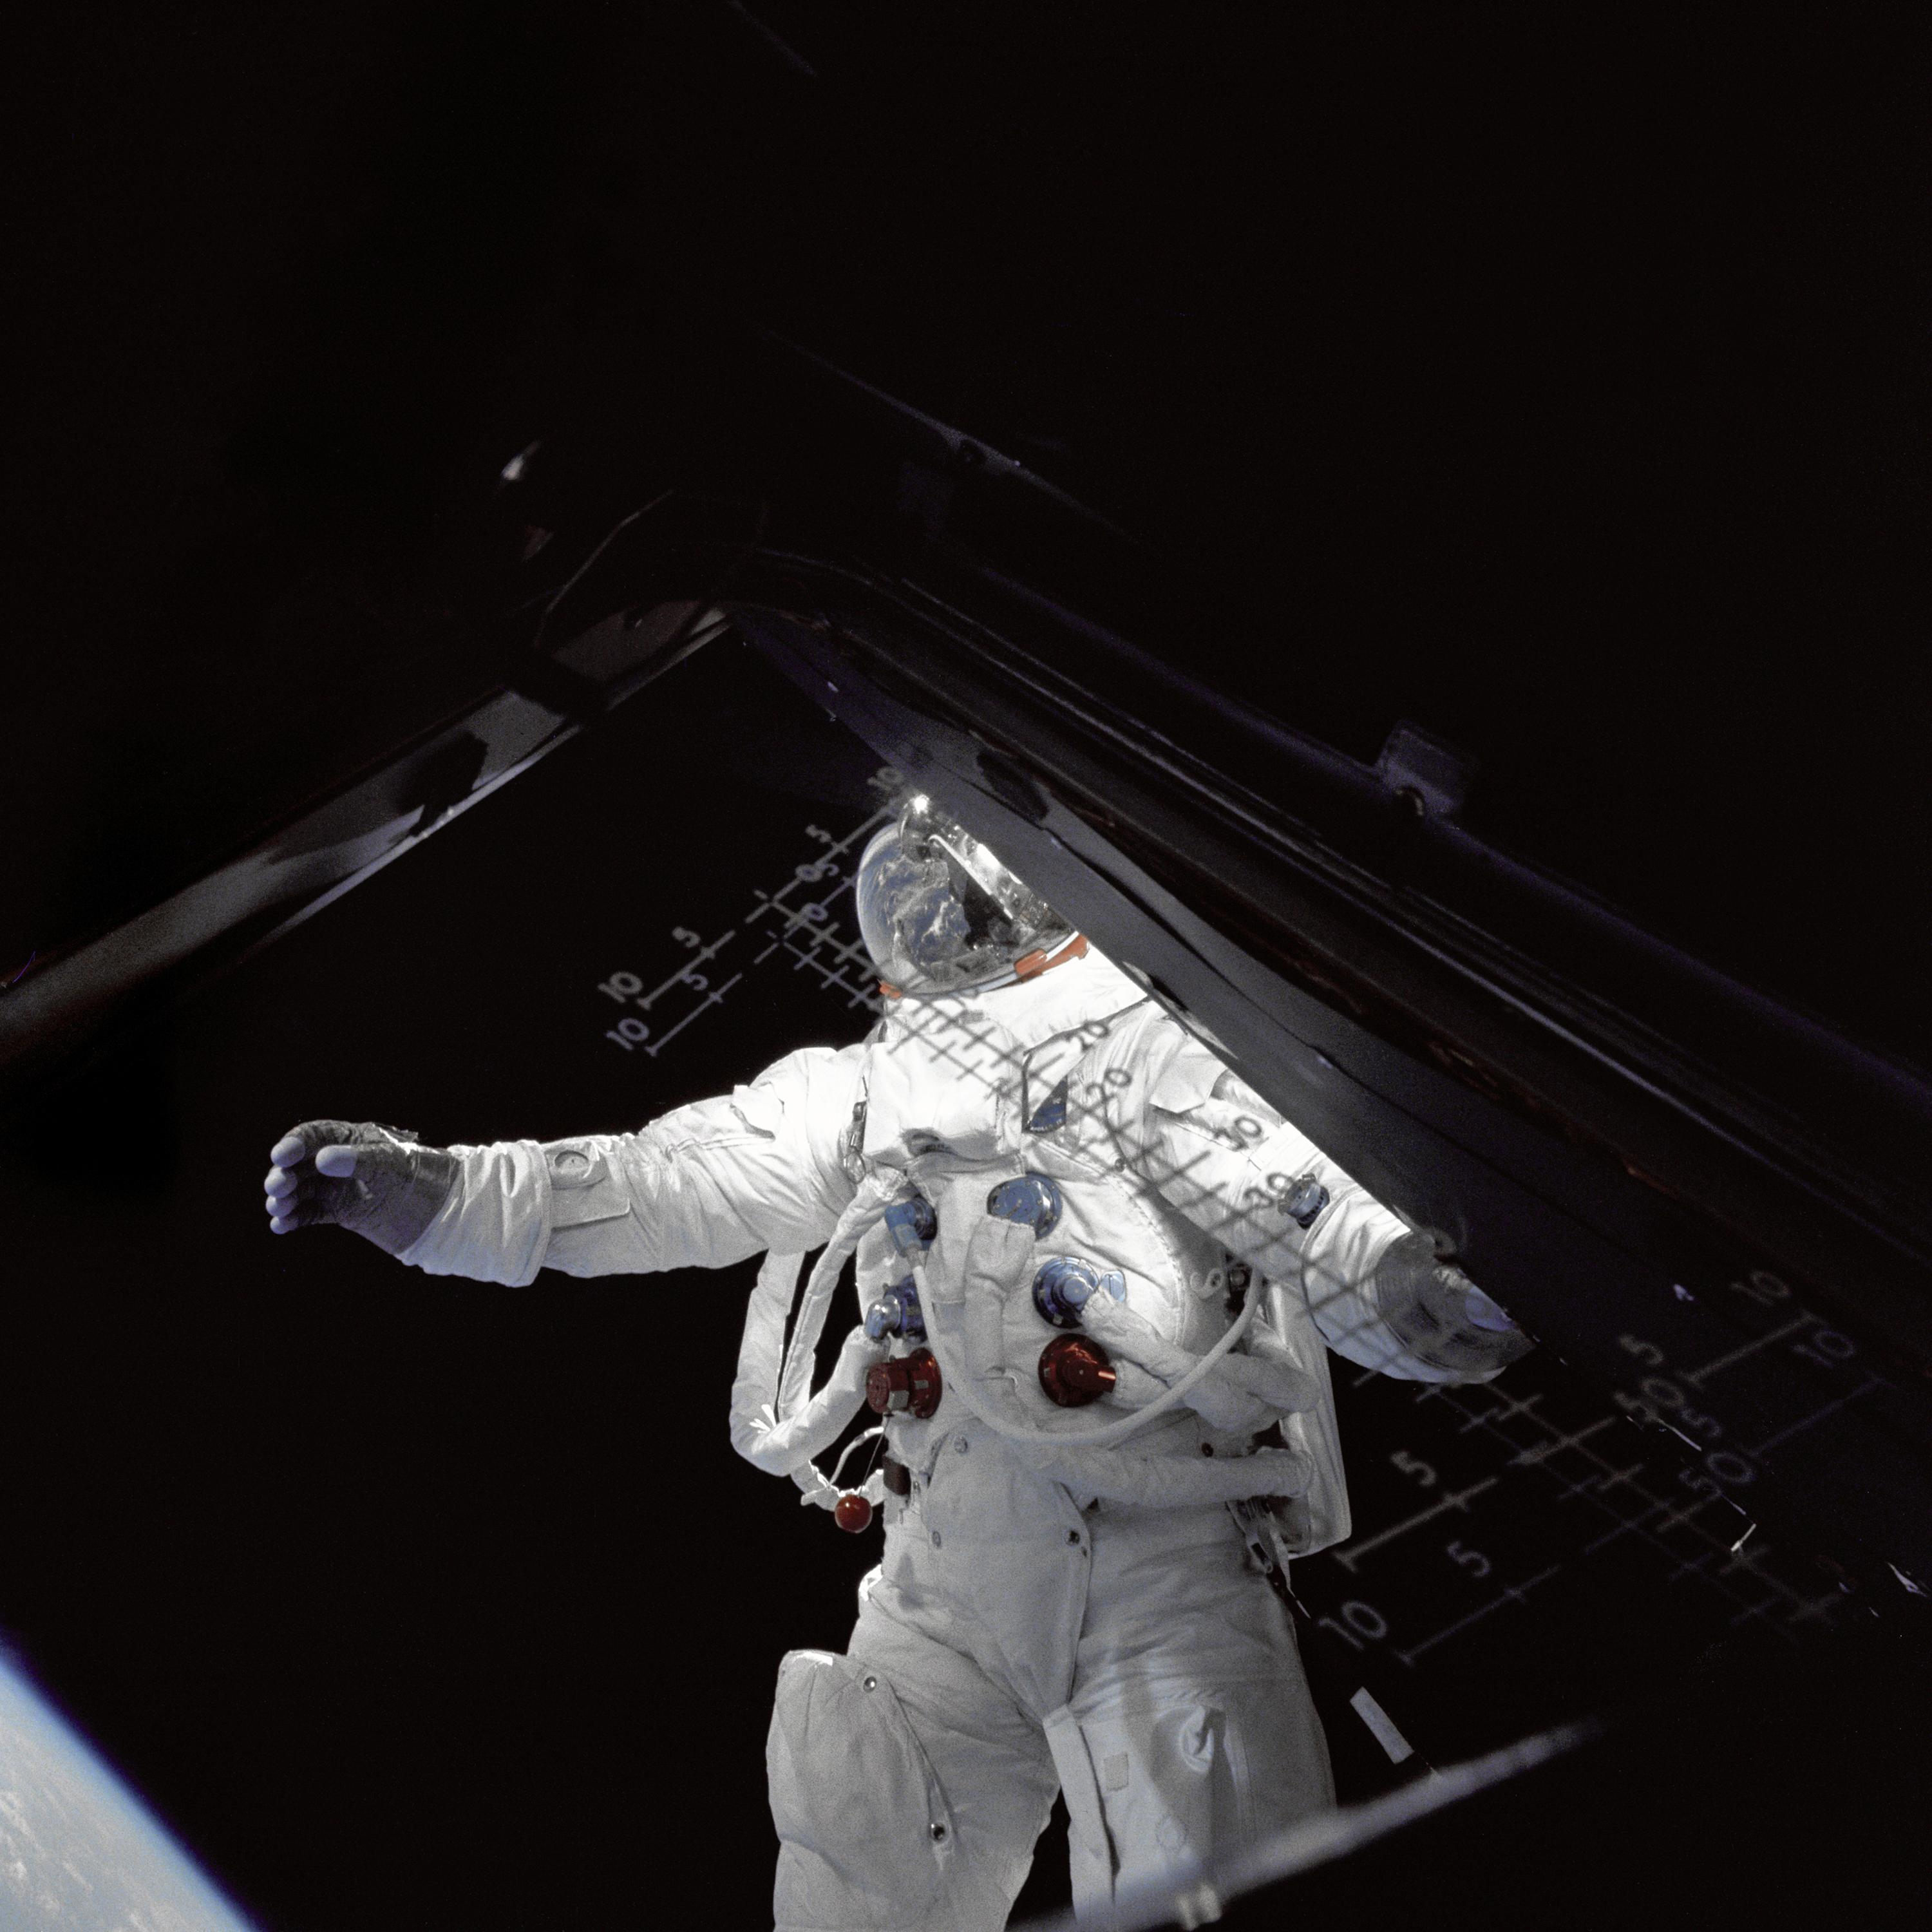 space apollo mission astronauts - photo #16